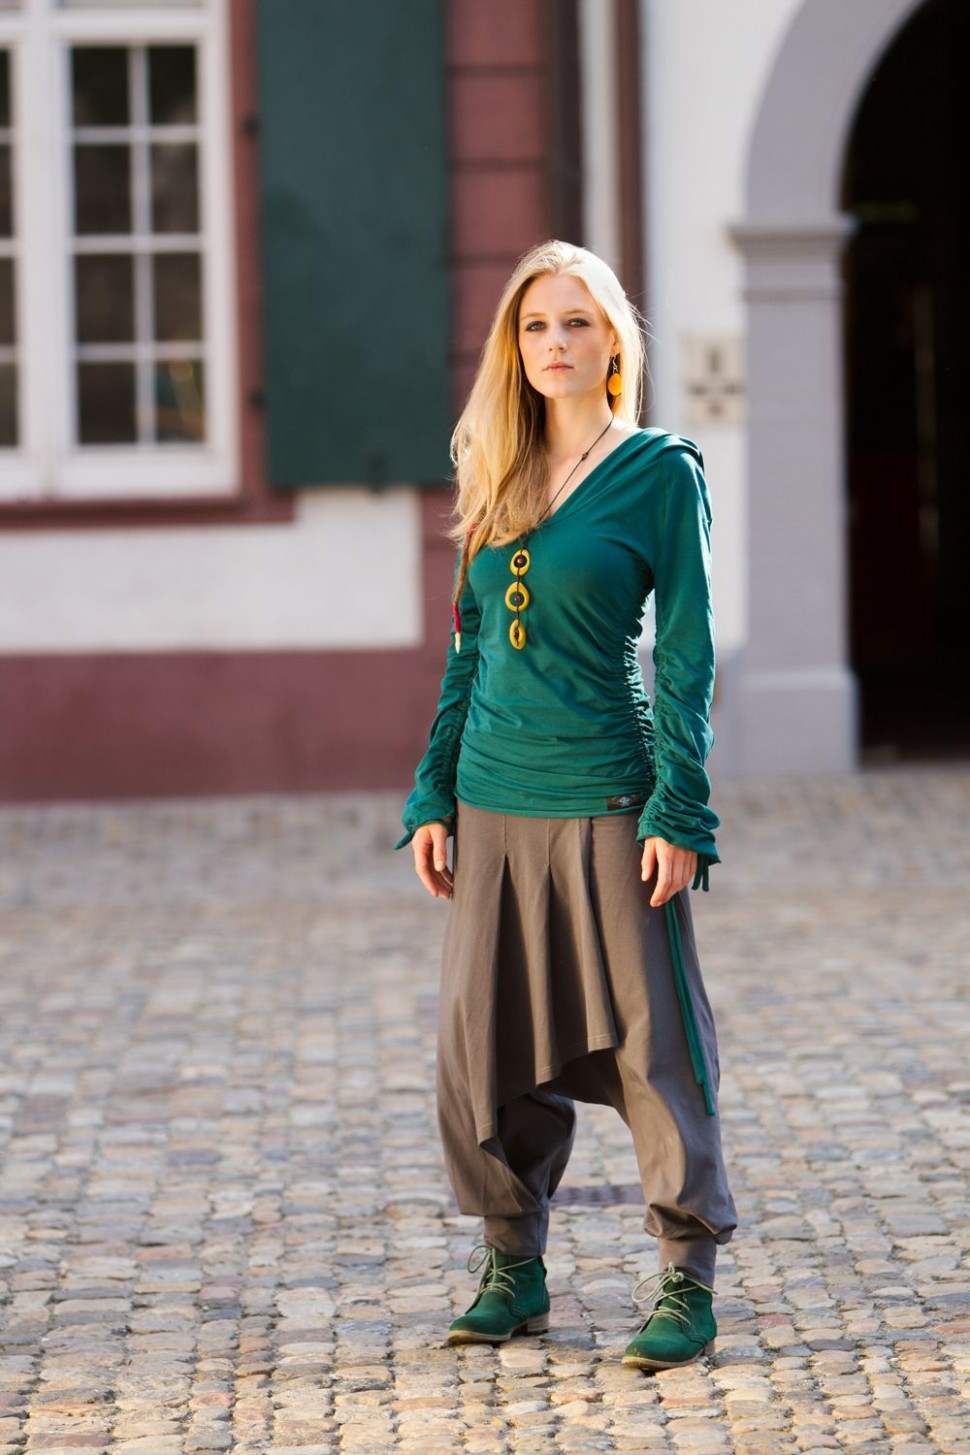 malva trousers with attached skirt part in the front